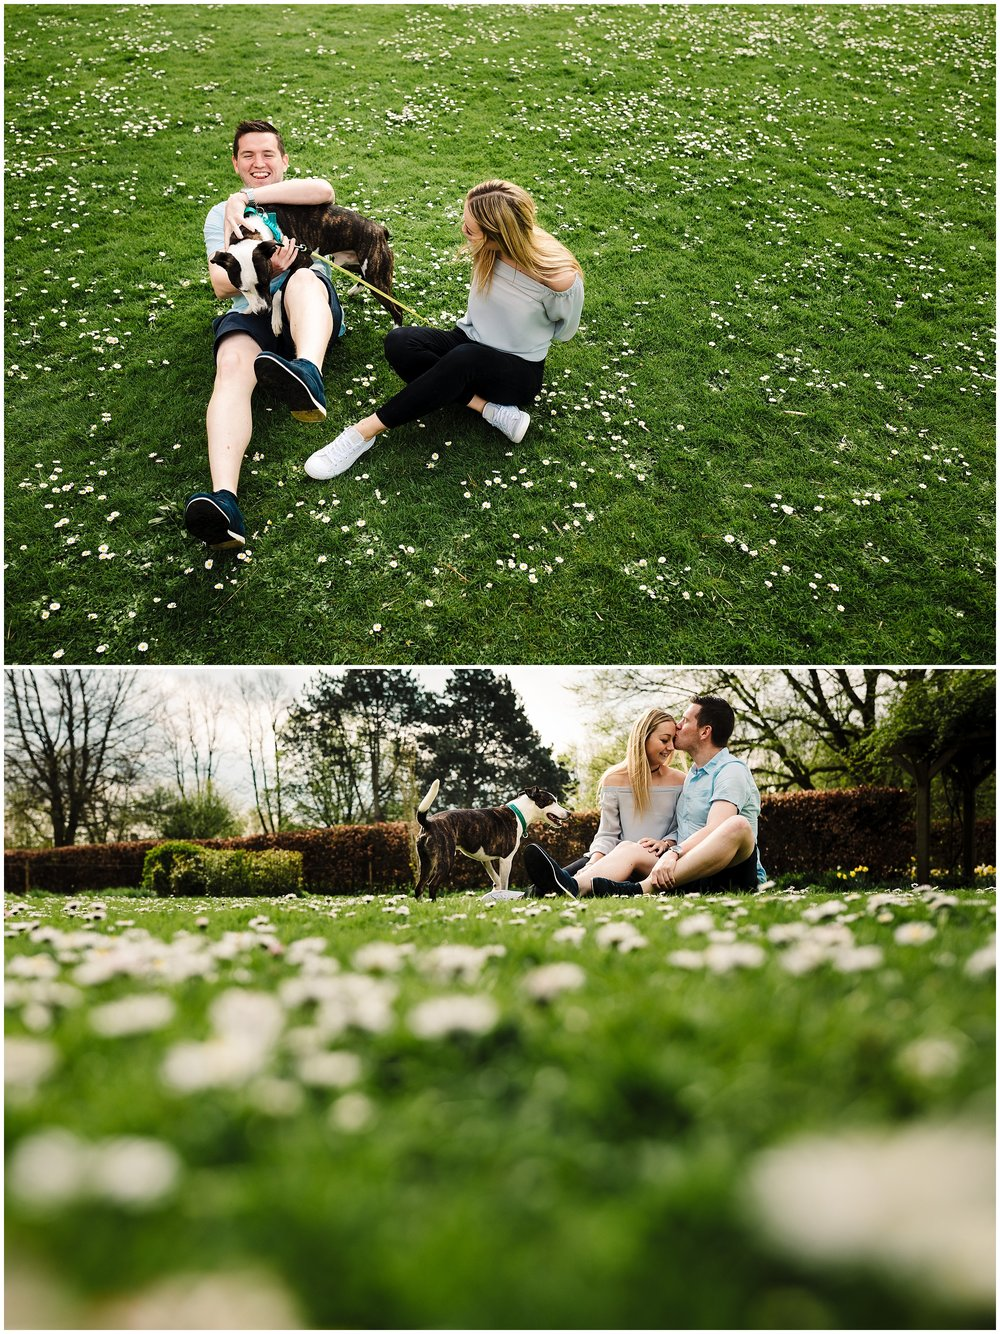 An engaged couple and their dog on an engagement shoot in rowntree park in york